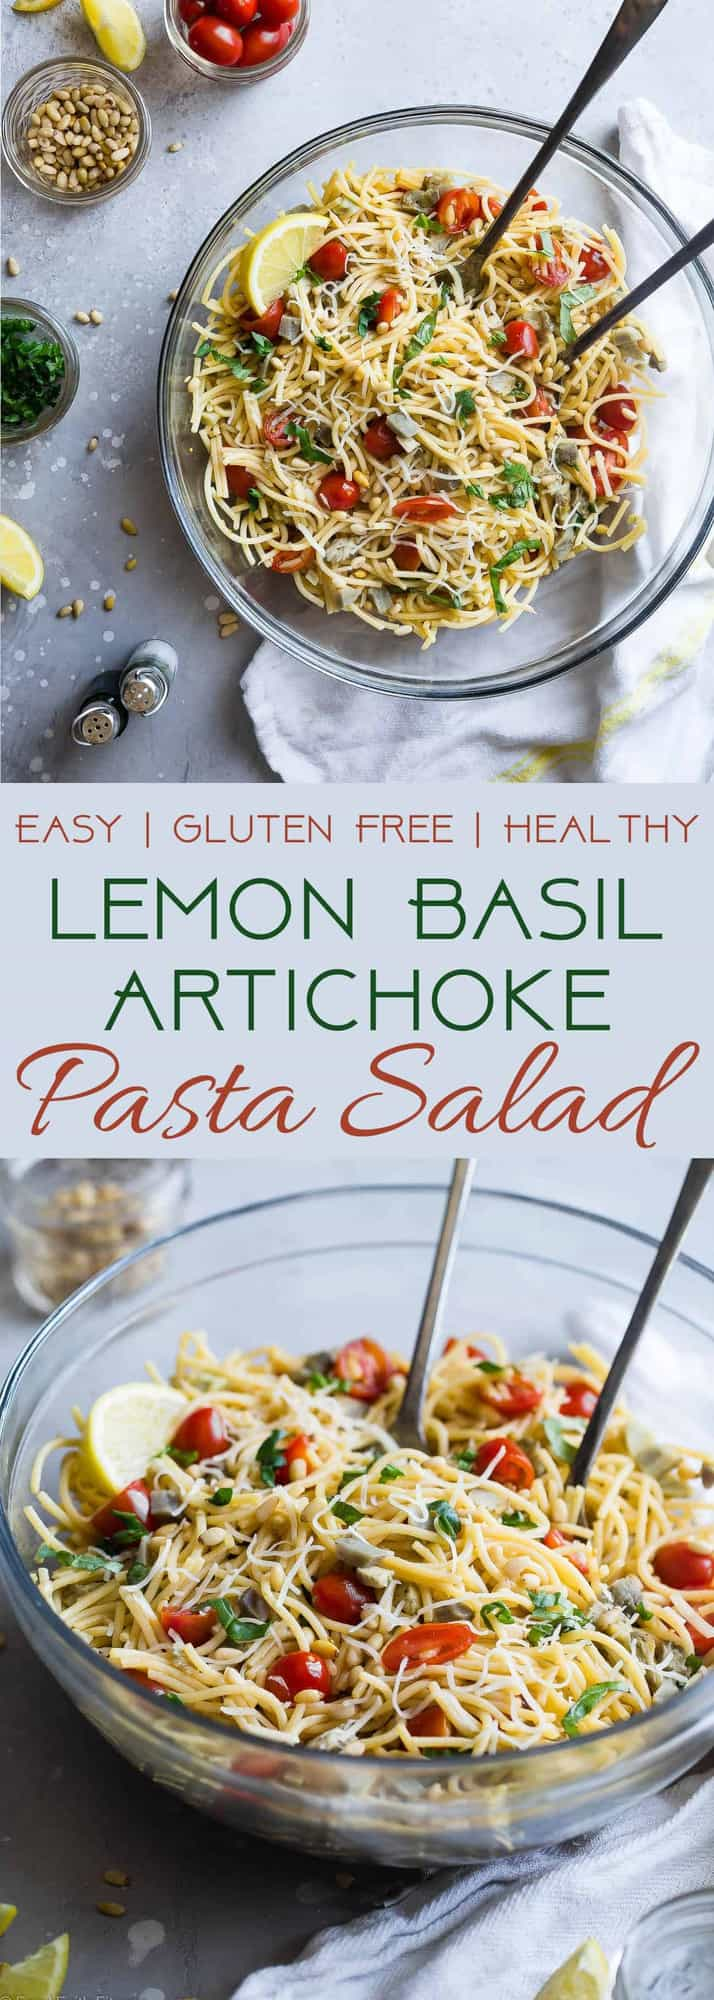 Gluten Free Lemon Artichoke Spaghetti Pasta Salad- A simple, healthy, vegan friendly pasta salad with creamy, roasted artichokes, bright fresh basil, garlic and lemon vinaigrette! Big flavors, so easy and great for Spring or Potlucks! | #Foodfaithfitness | #Vegan #Glutenfree #Healthy #Pastasalad #Dairyfree